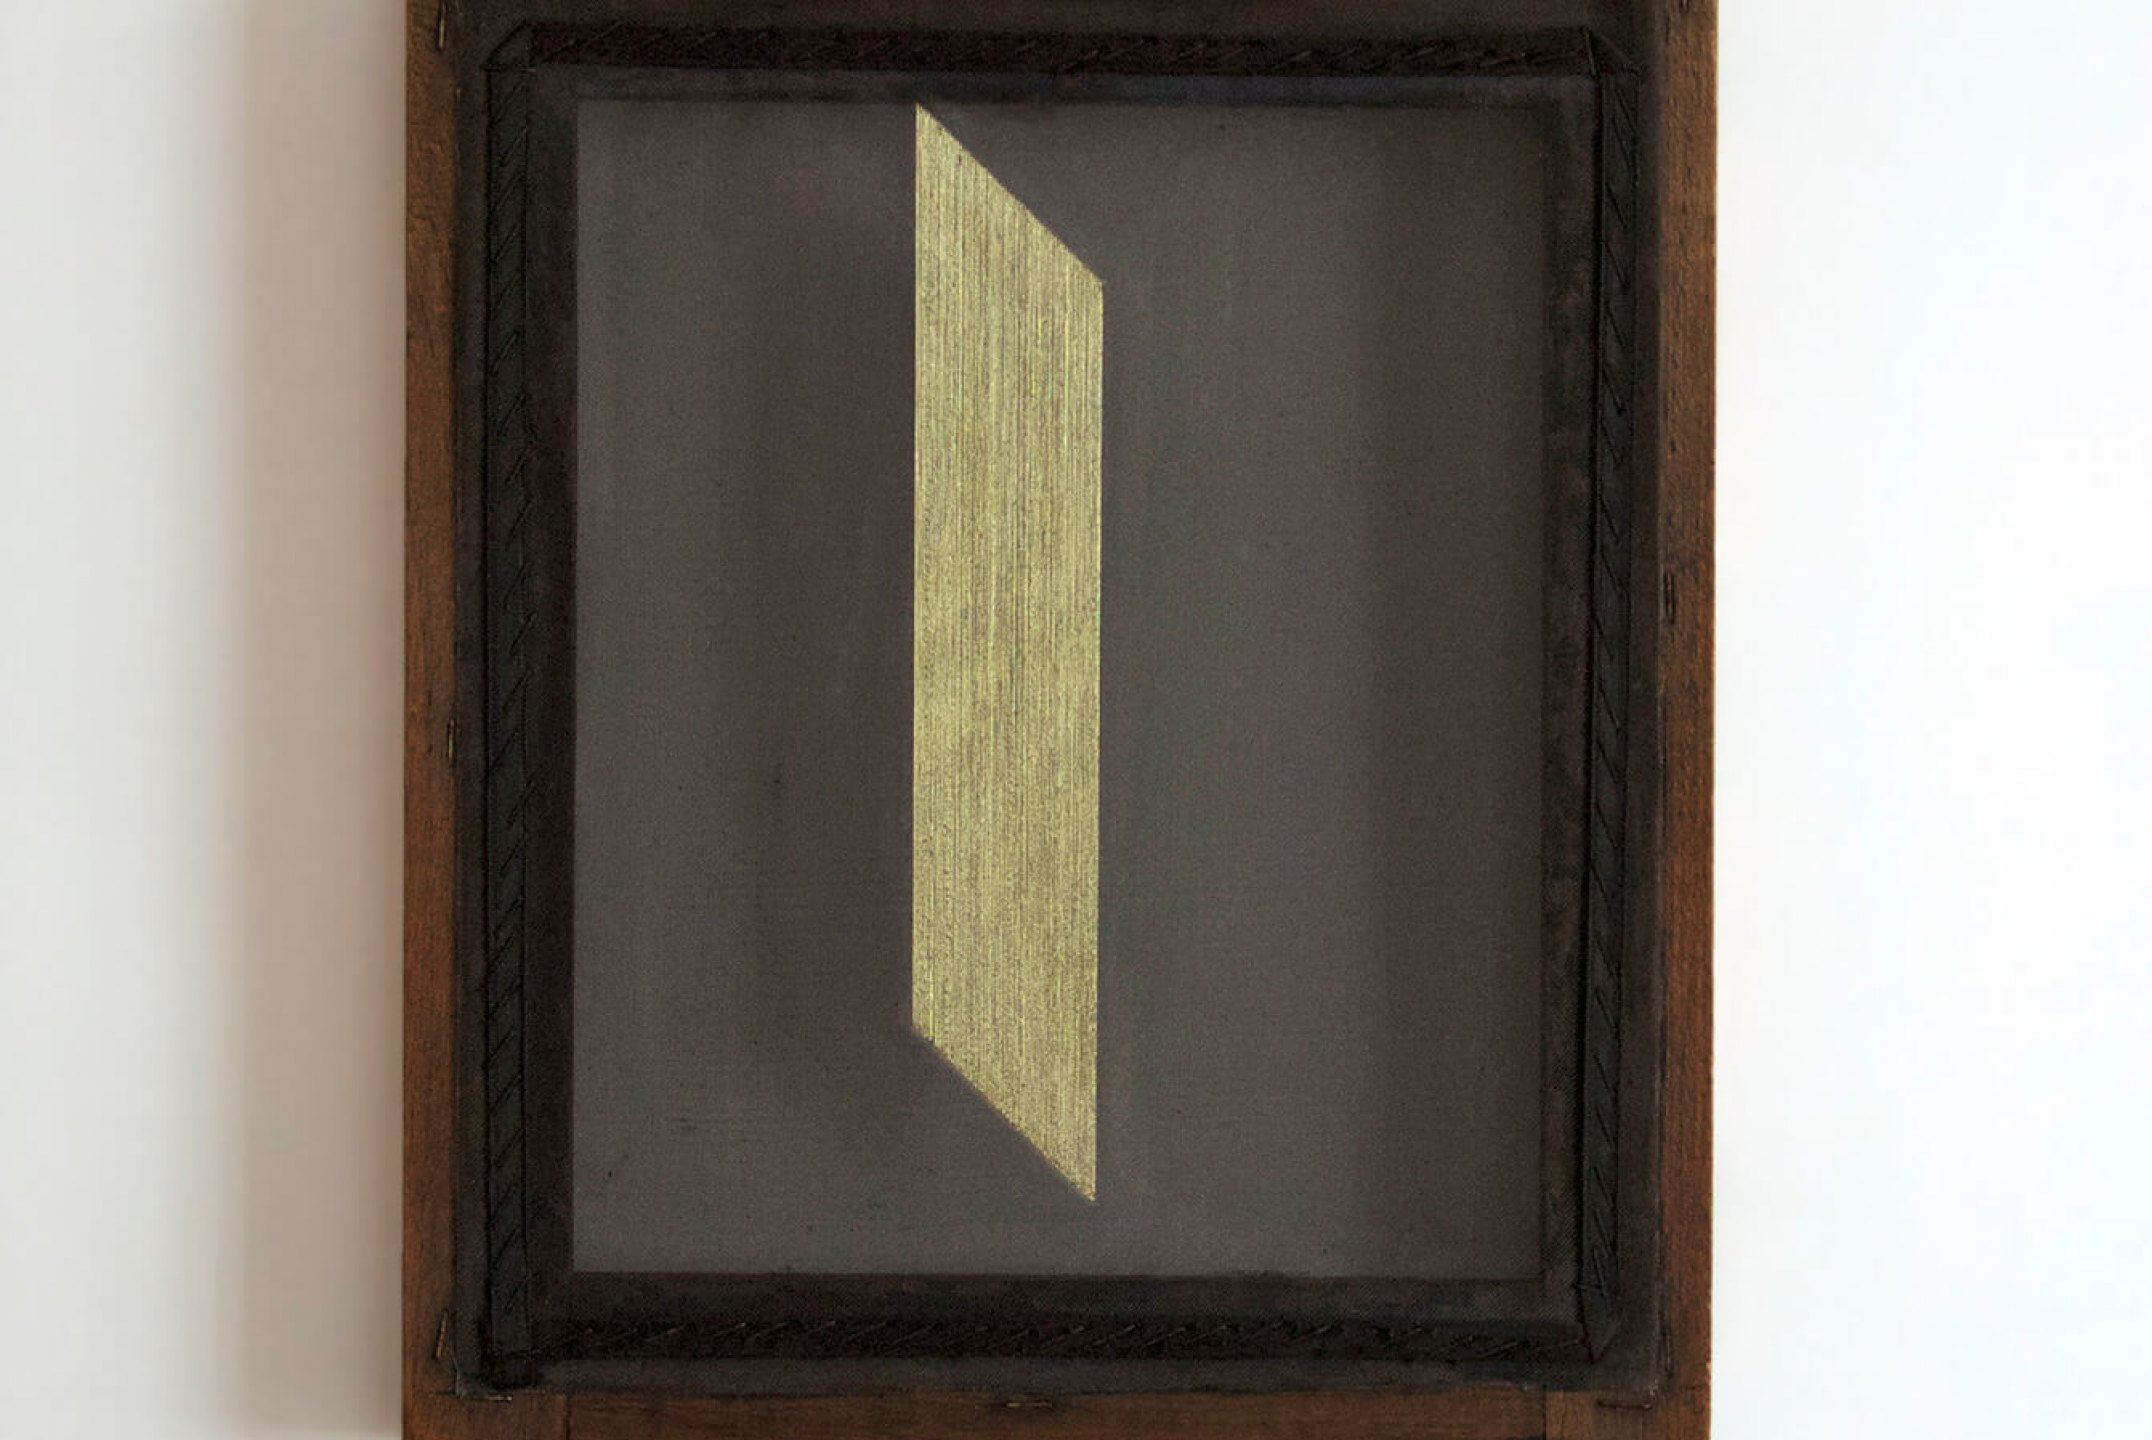 Paloma Bosquê, <em>Blade #3</em>,&nbsp;2014,&nbsp;lurex threads on canvas,&nbsp;39 × 30,5 cm - Mendes Wood DM